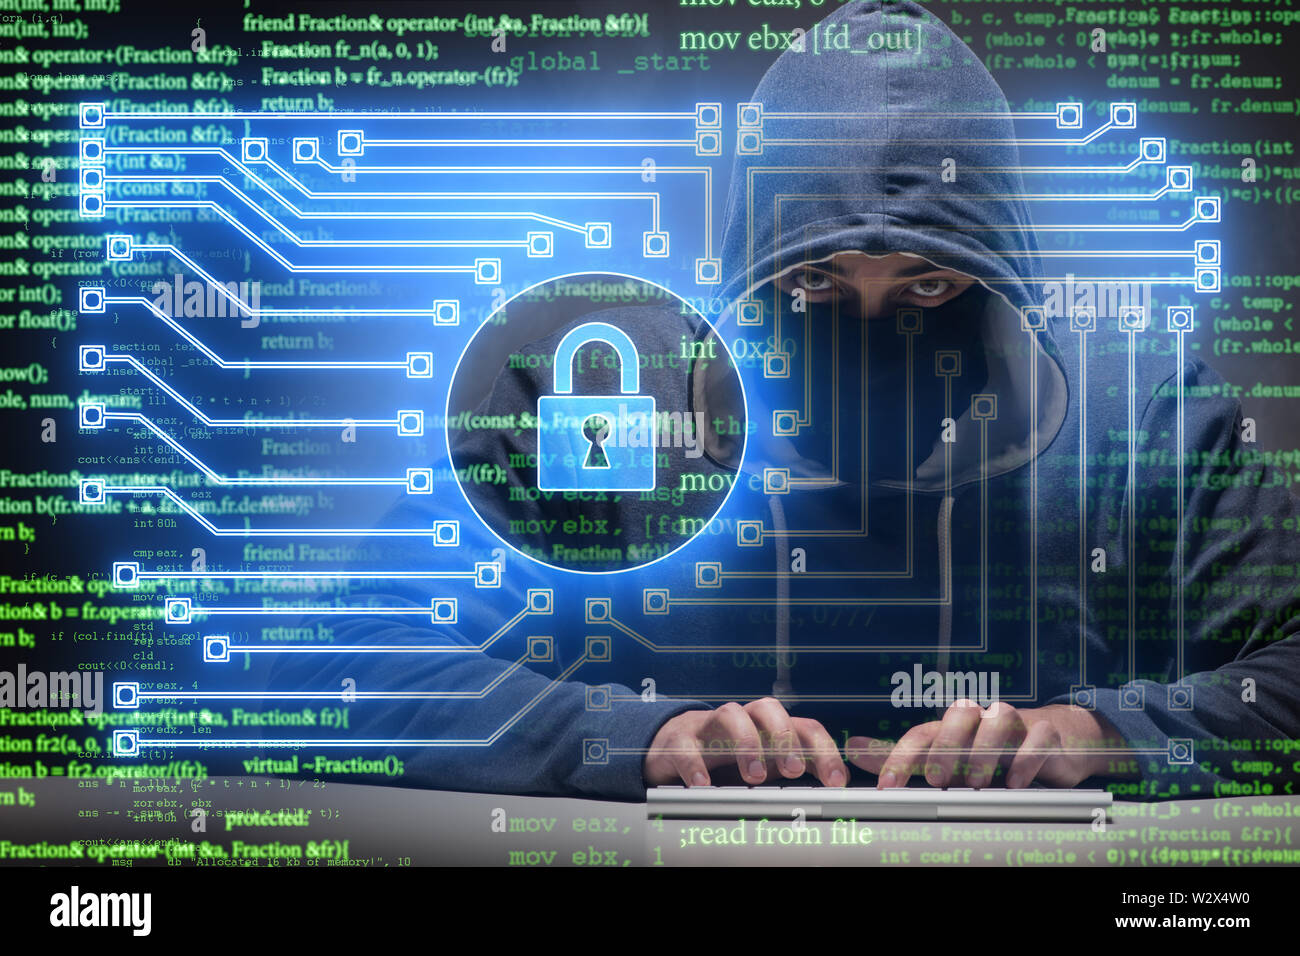 The young hacker in cybersecurty concept - Stock Image